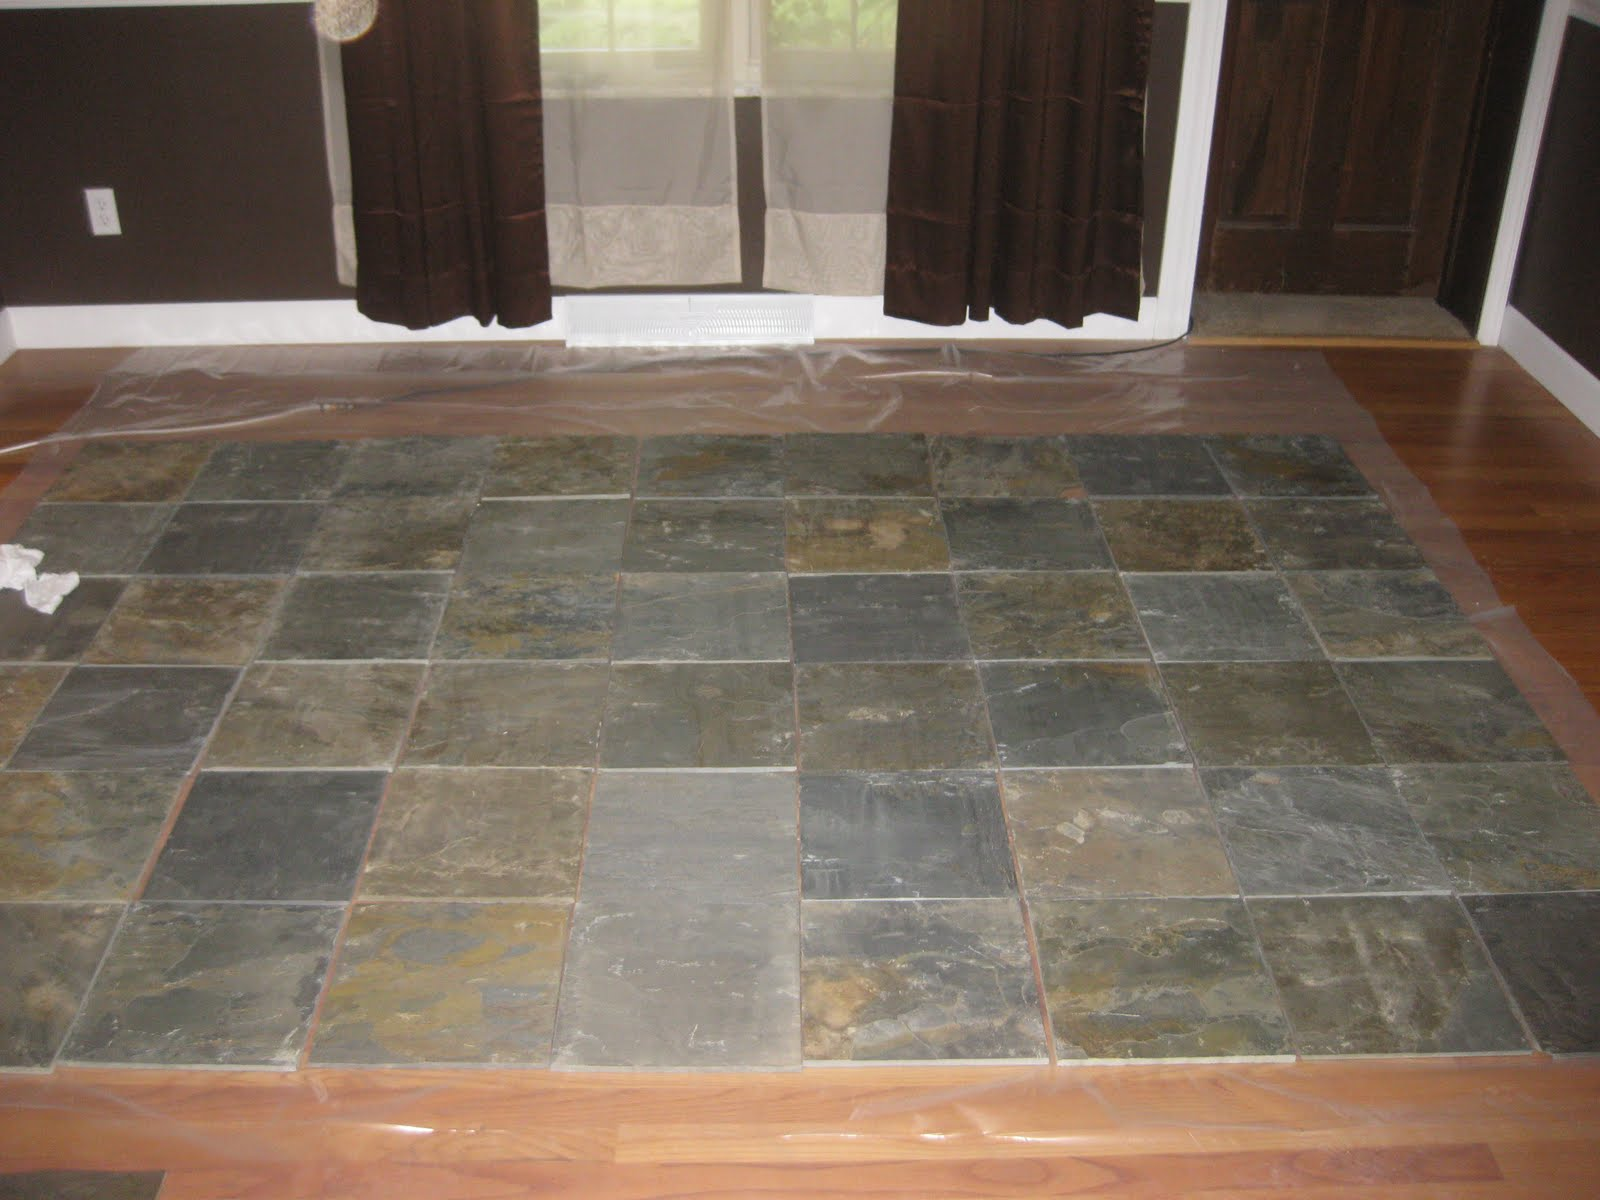 Linoleum On Bathroom Floor : New and improving master bath has a floor